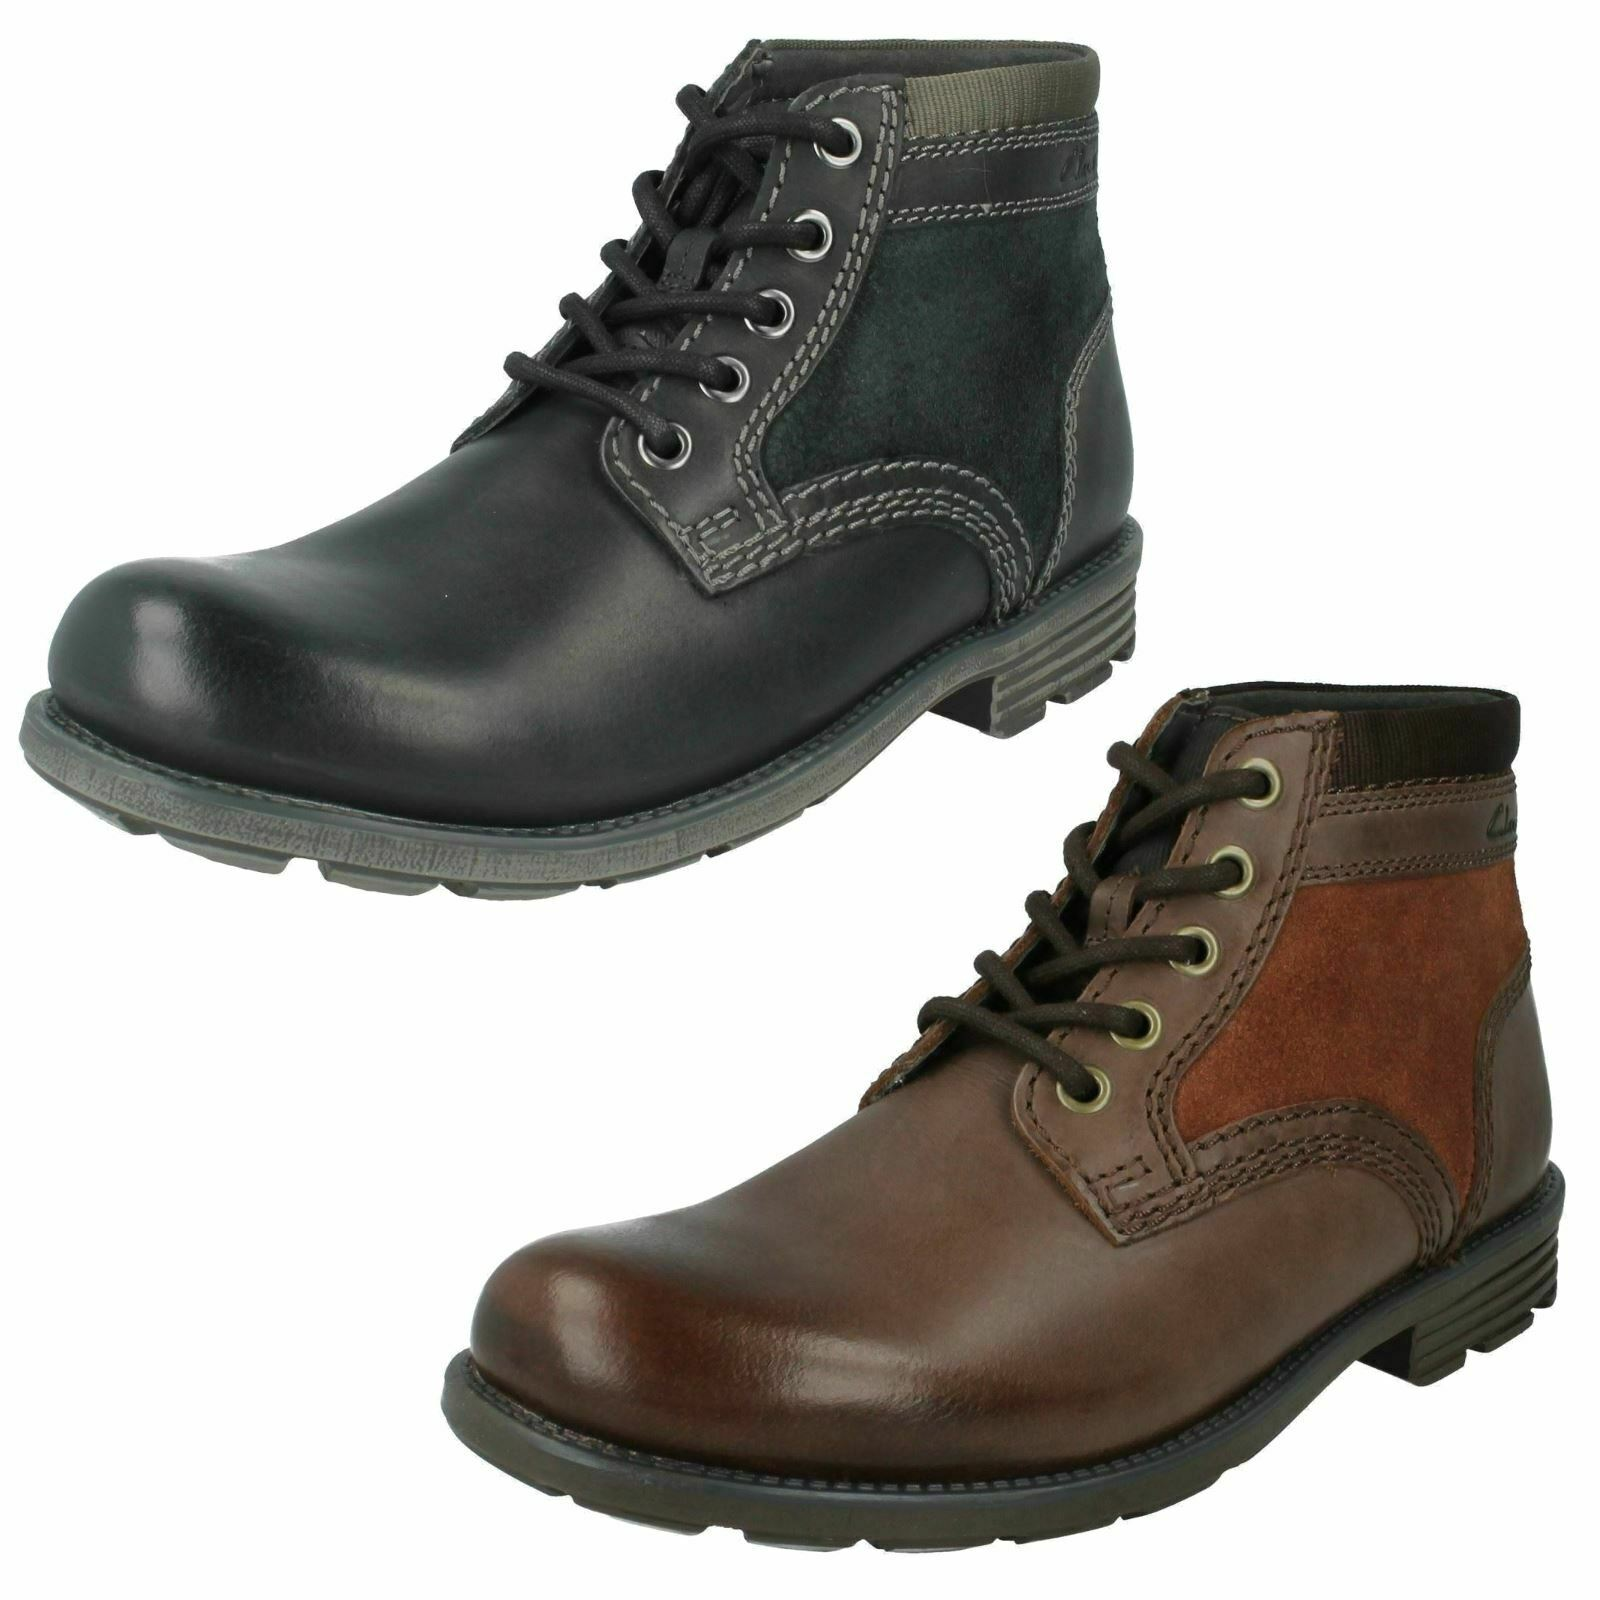 Mens Clarks Casual Ankle Boots 'Darian Mid'